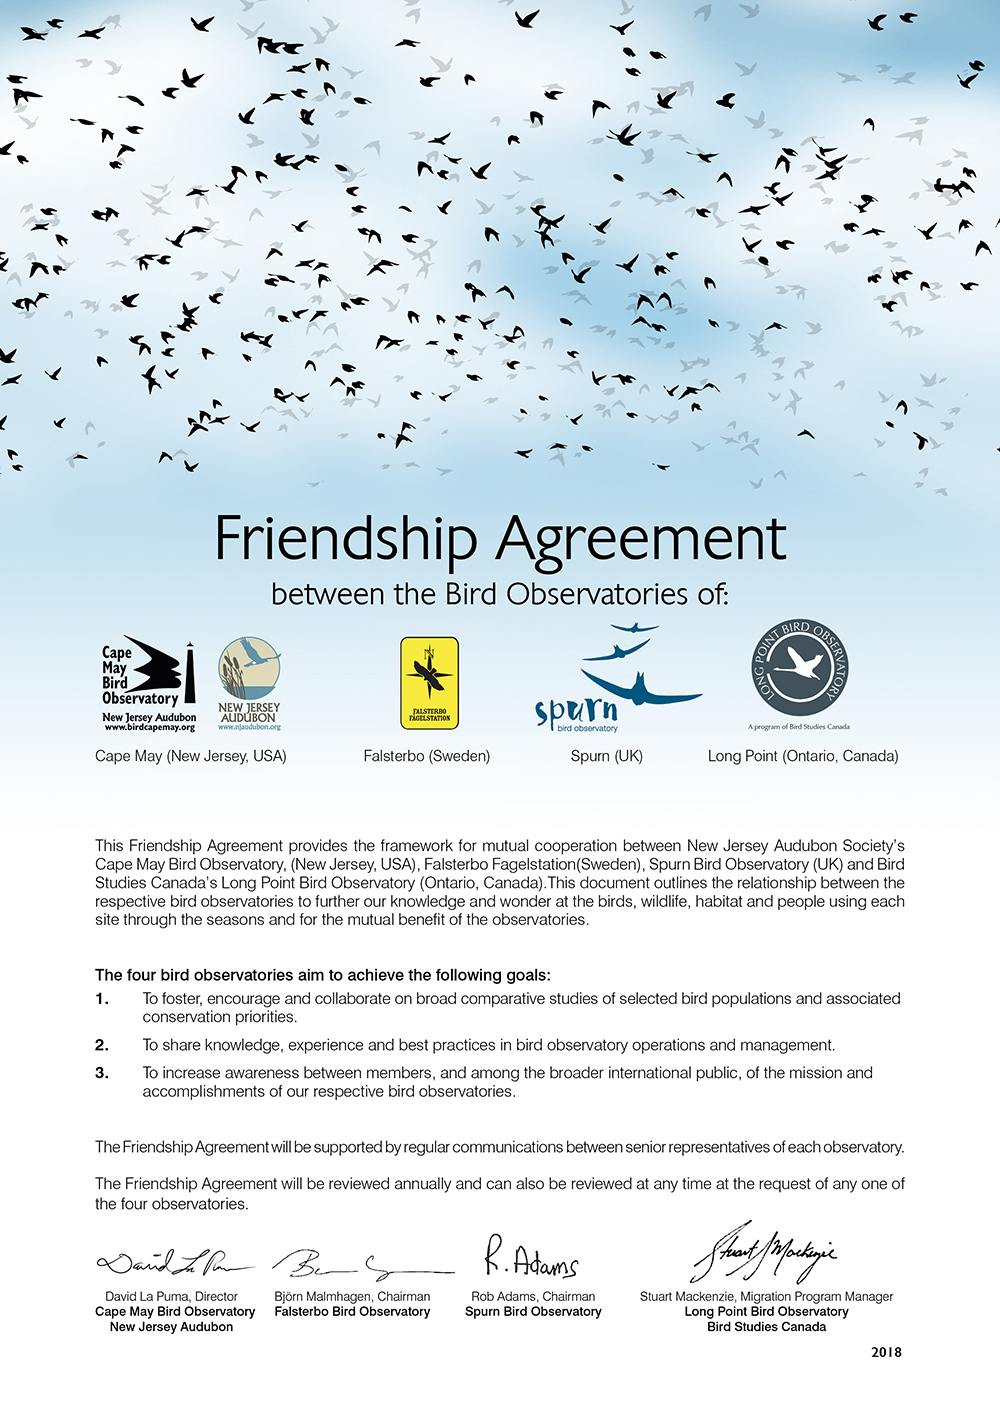 Friendship Agreement